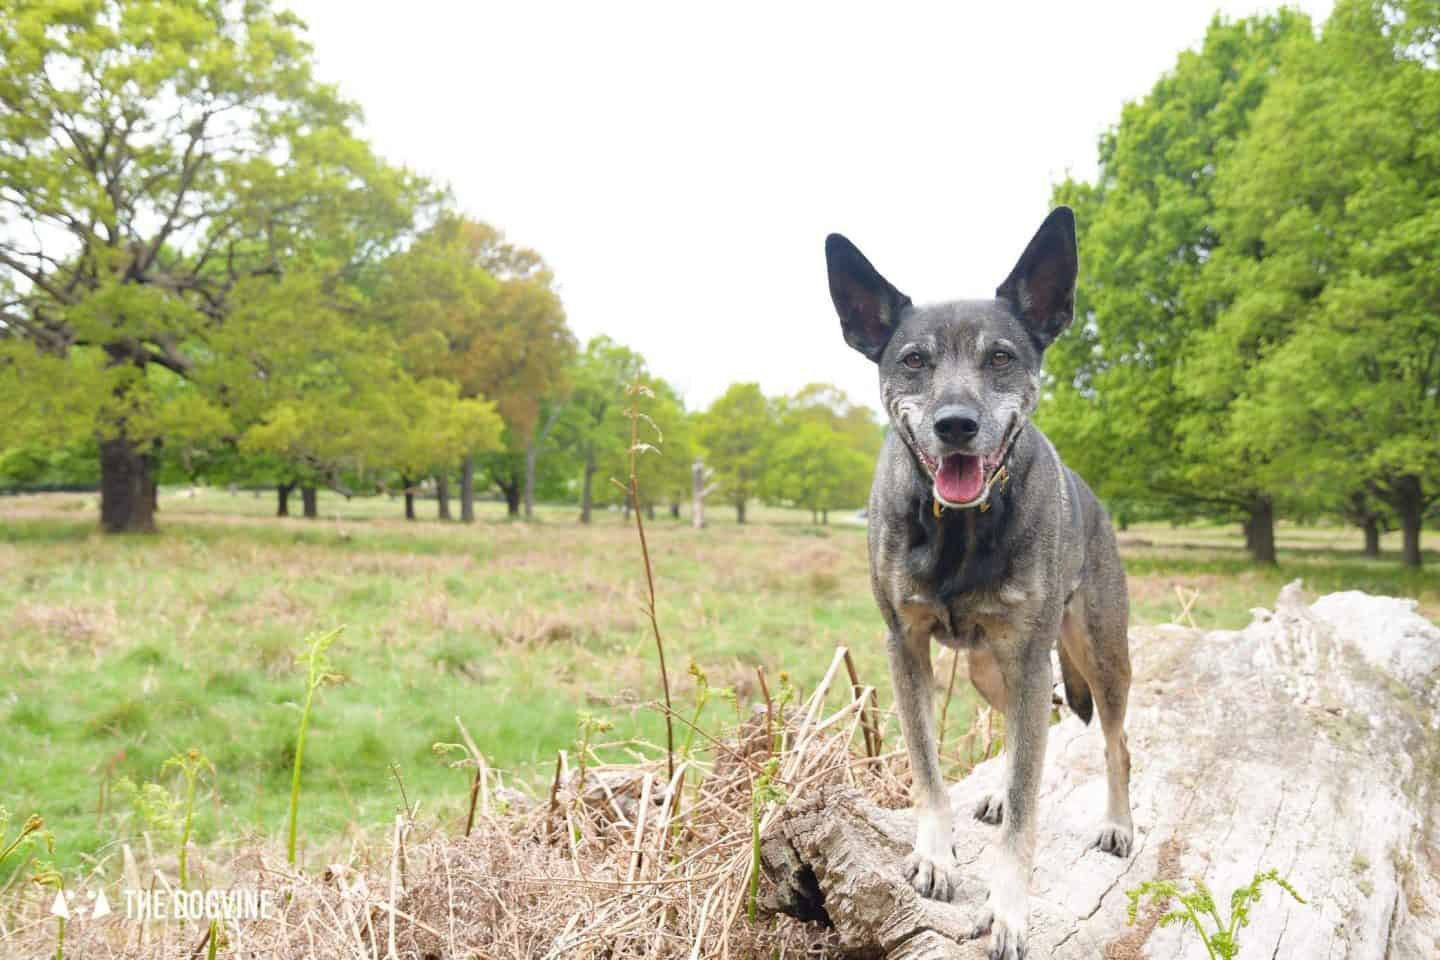 Dog-friendly London The Best Free Dog-friendly Things To Do - Richmond Park